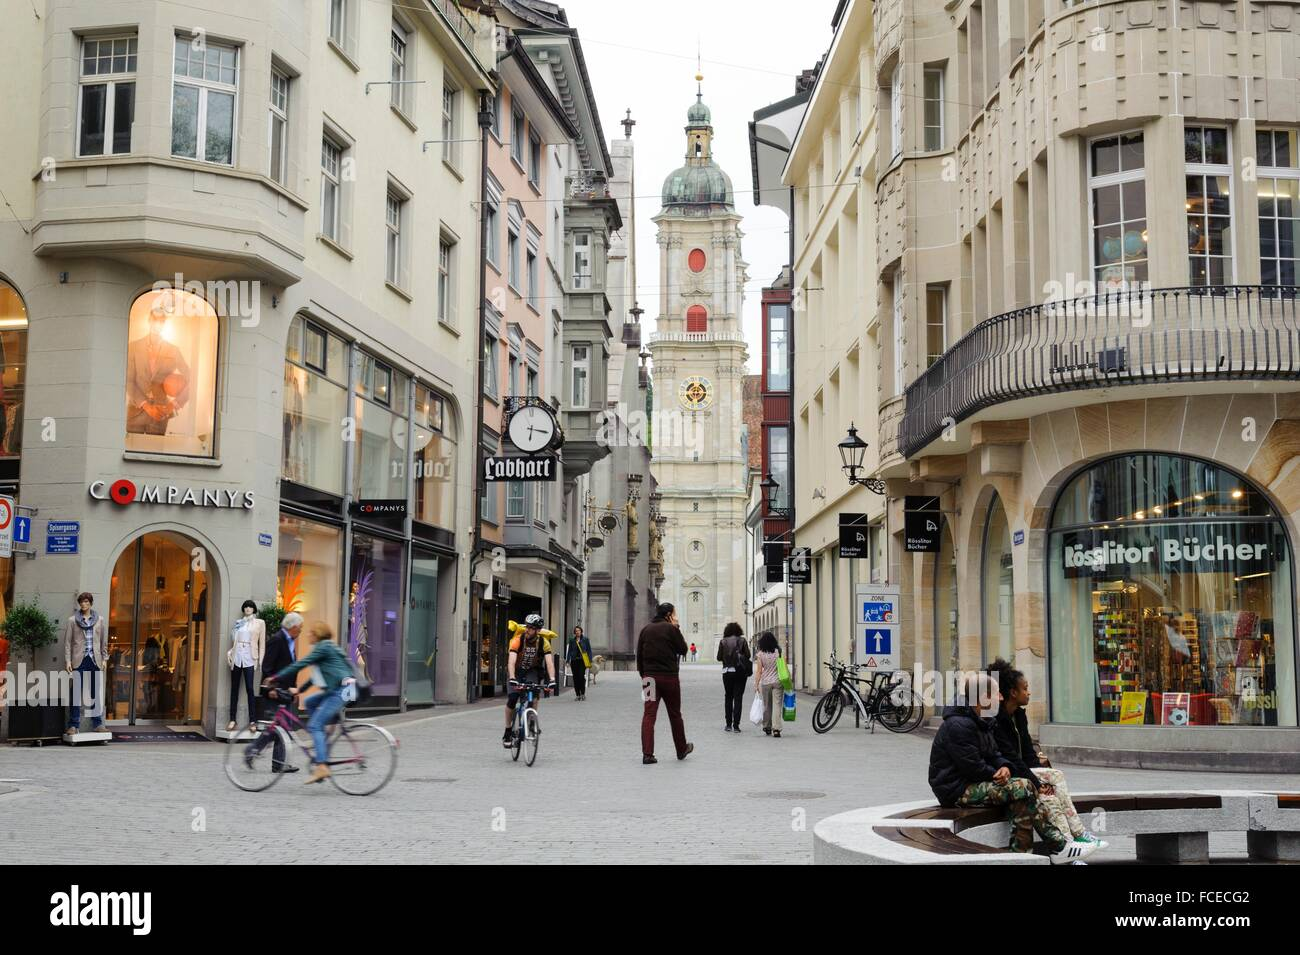 kathedrale altstadt st gallen kanton st gallen schweiz stock photo 93744898 alamy. Black Bedroom Furniture Sets. Home Design Ideas